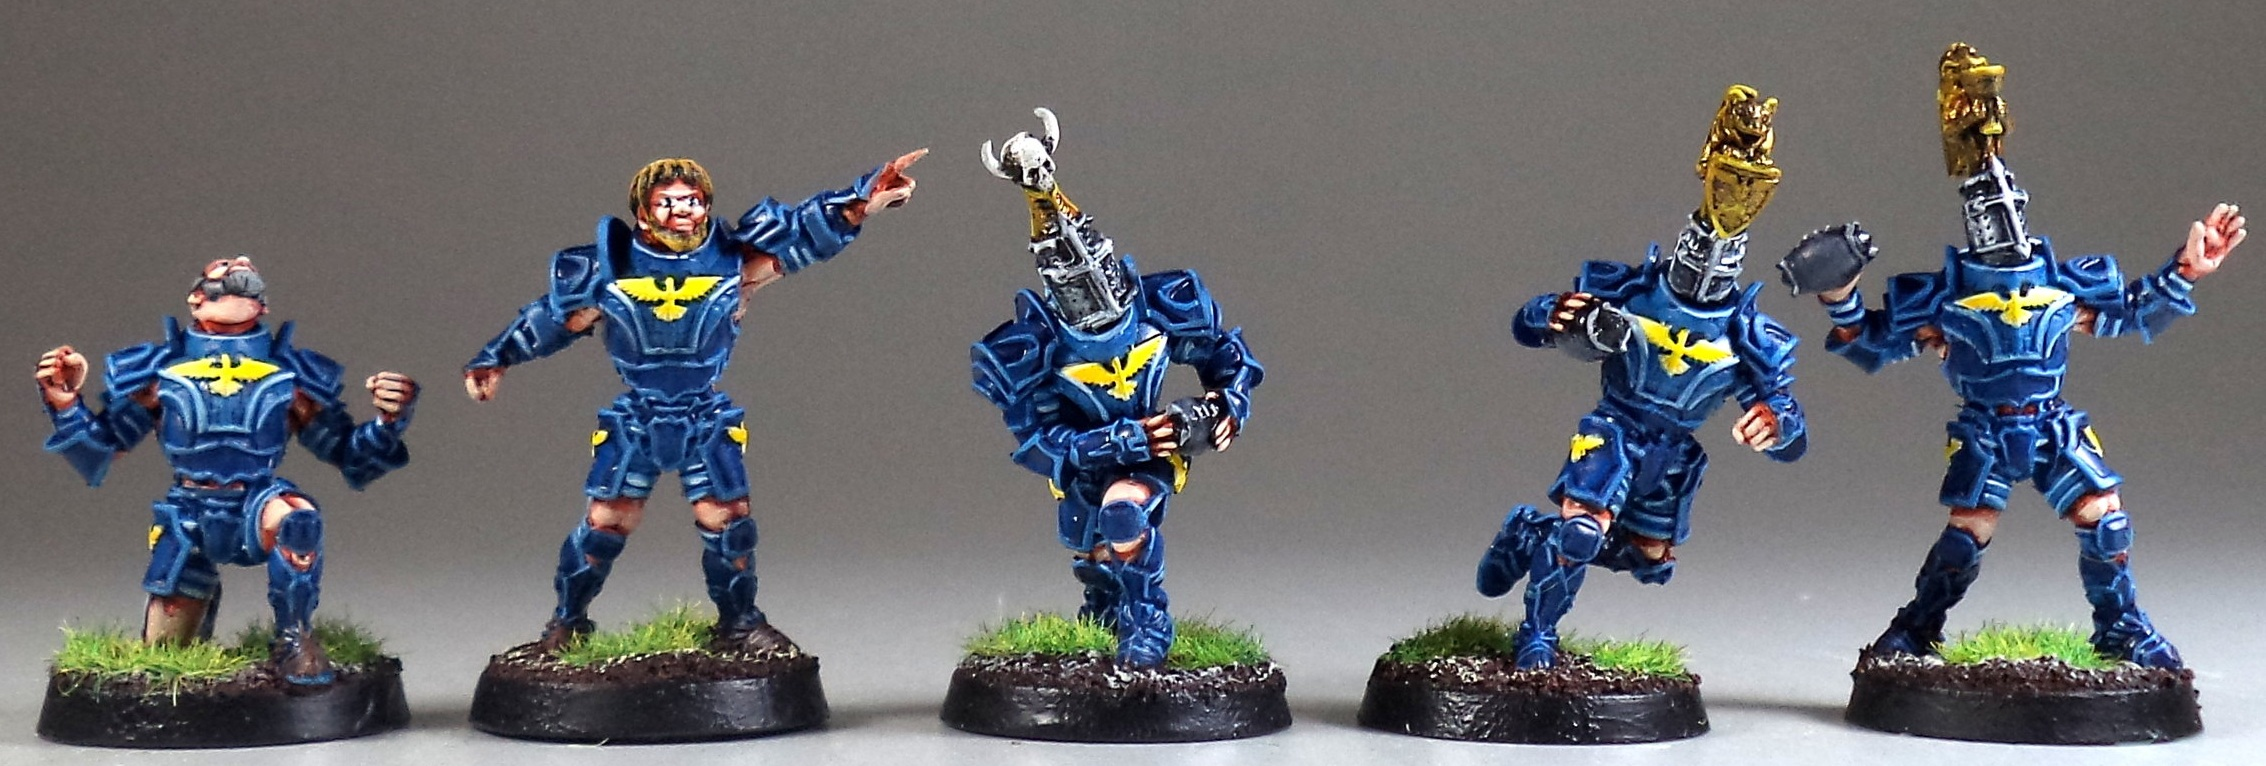 Paintedfigs+Miniature+Painting+Service+Bloodbowl+2.jpg